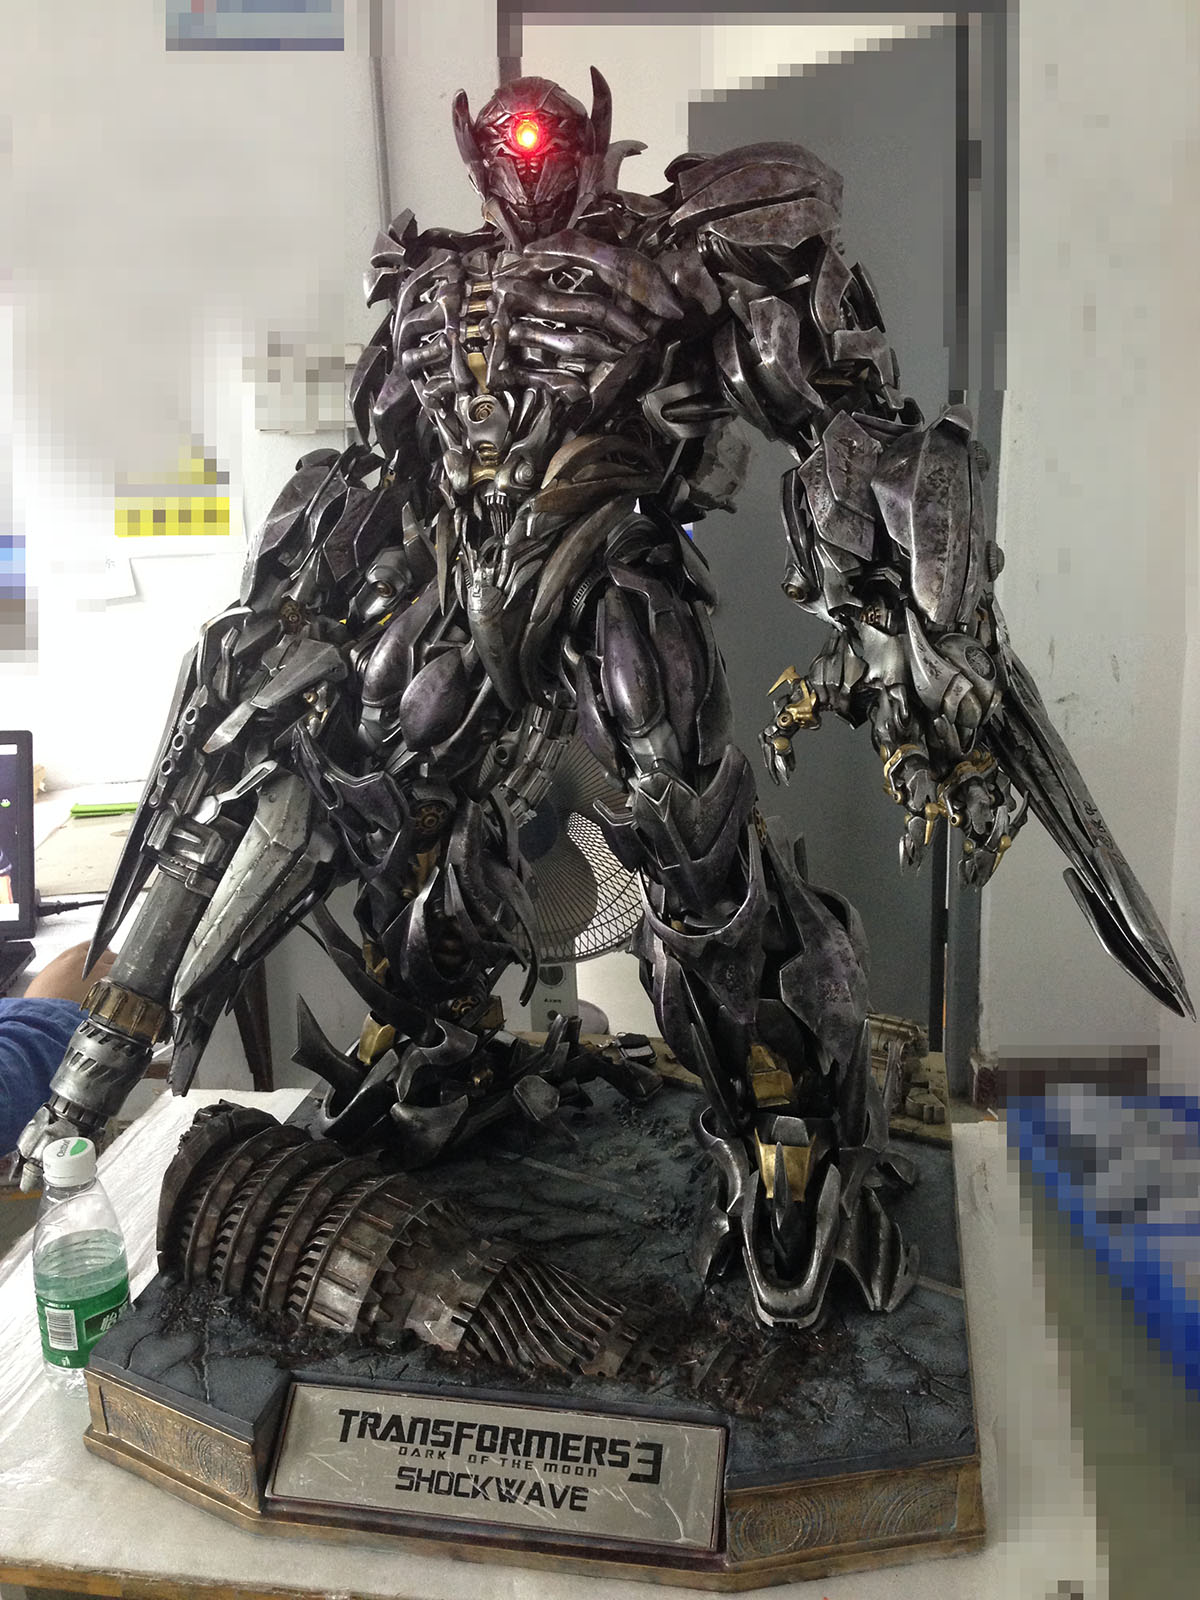 Statues des Films Transformers (articulé, non transformable) ― Par Prime1Studio, M3 Studio, Concept Zone, Super Fans Group, Soap Studio, Soldier Story Toys, etc - Page 3 249936951